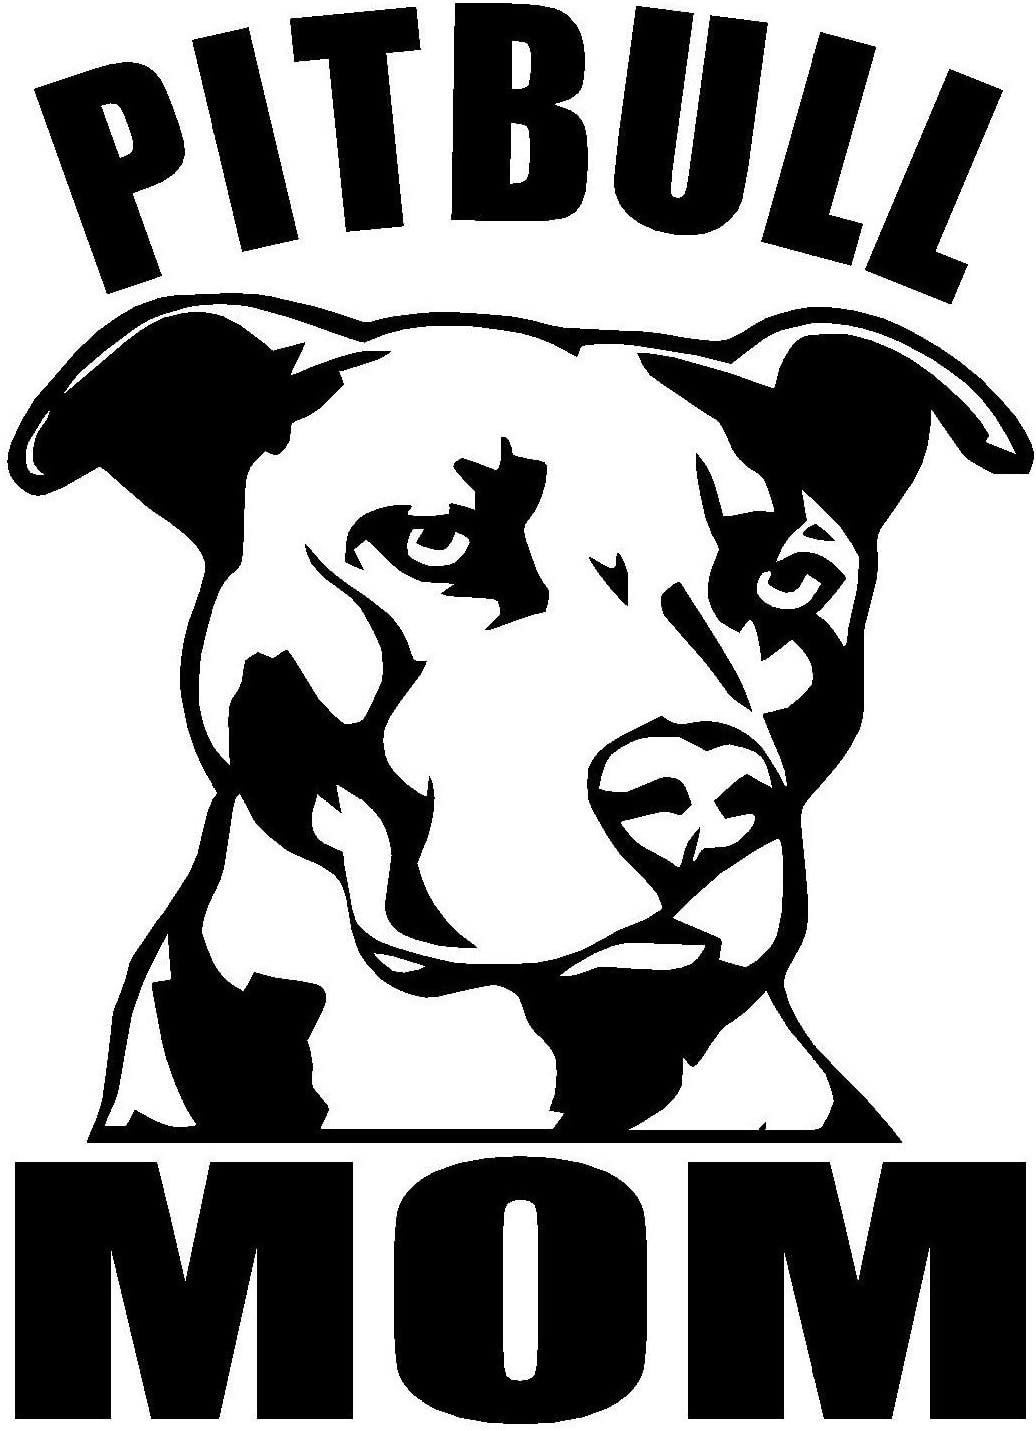 "PITBULL MOM 6"" Tall Die Cut Decal Sticker for Laptop Car Window Tablet Skateboard - BLACK"